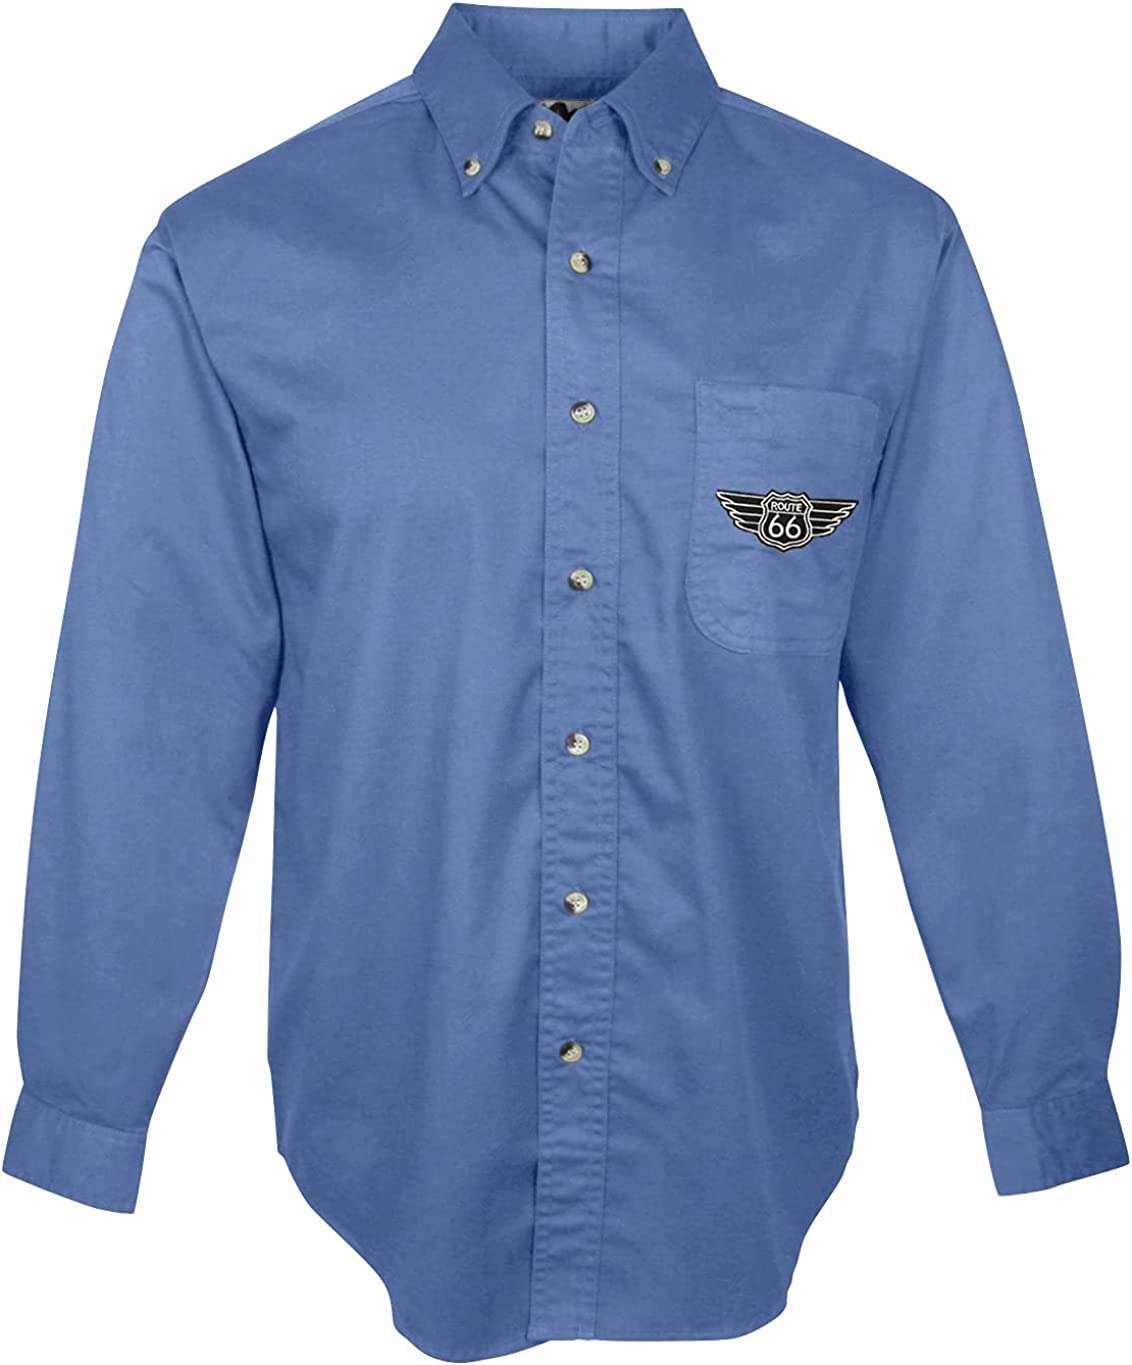 Buy Cool Shirts Rt Route 66 Patch Dress Shirt with Pocket - Regular, Big and Tall Sizes